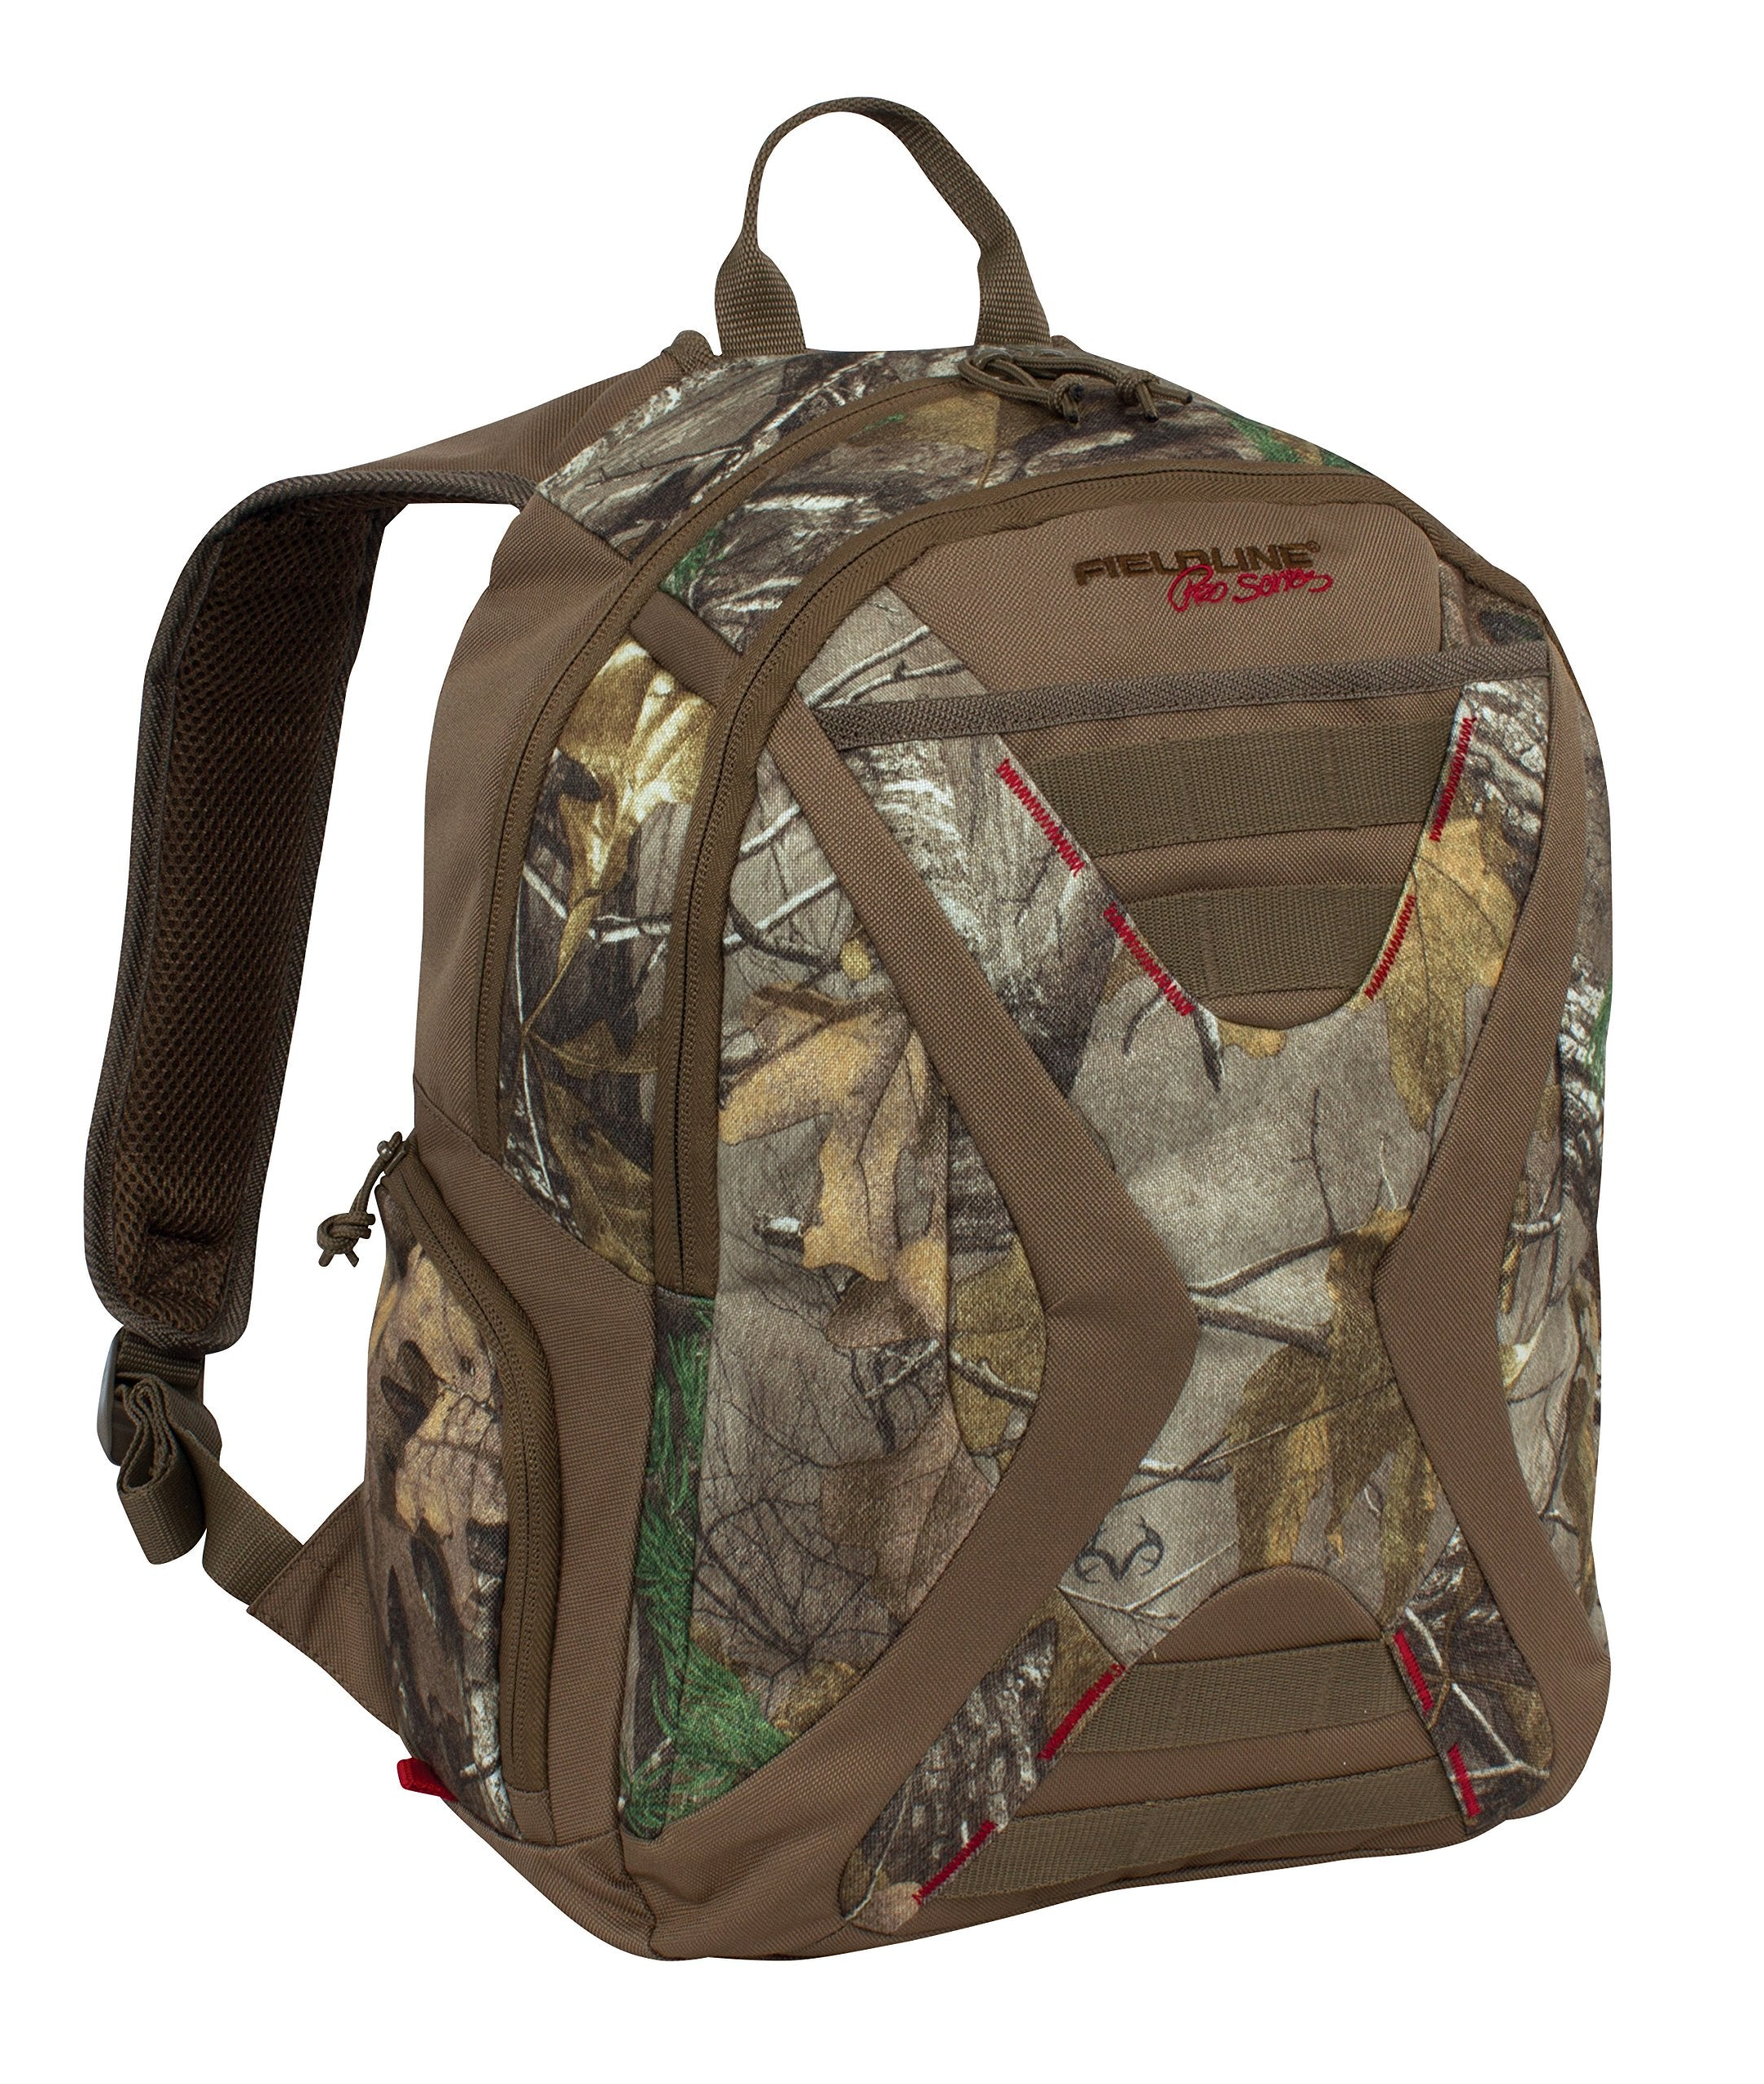 Fieldline Pro Series Montana Backpack